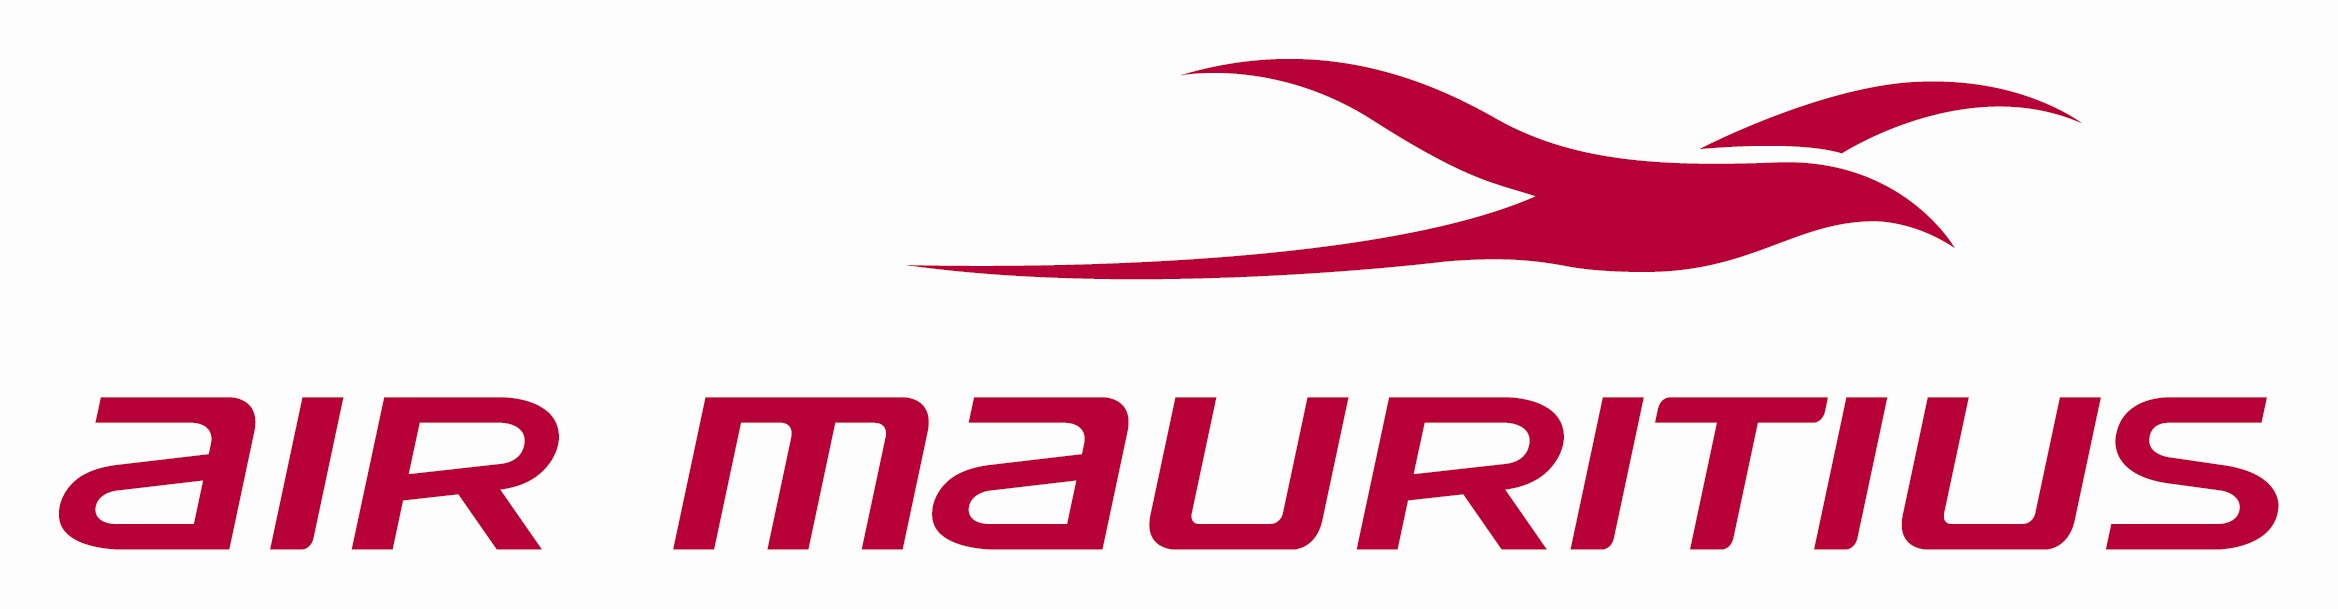 Image result for mauritius airways logo